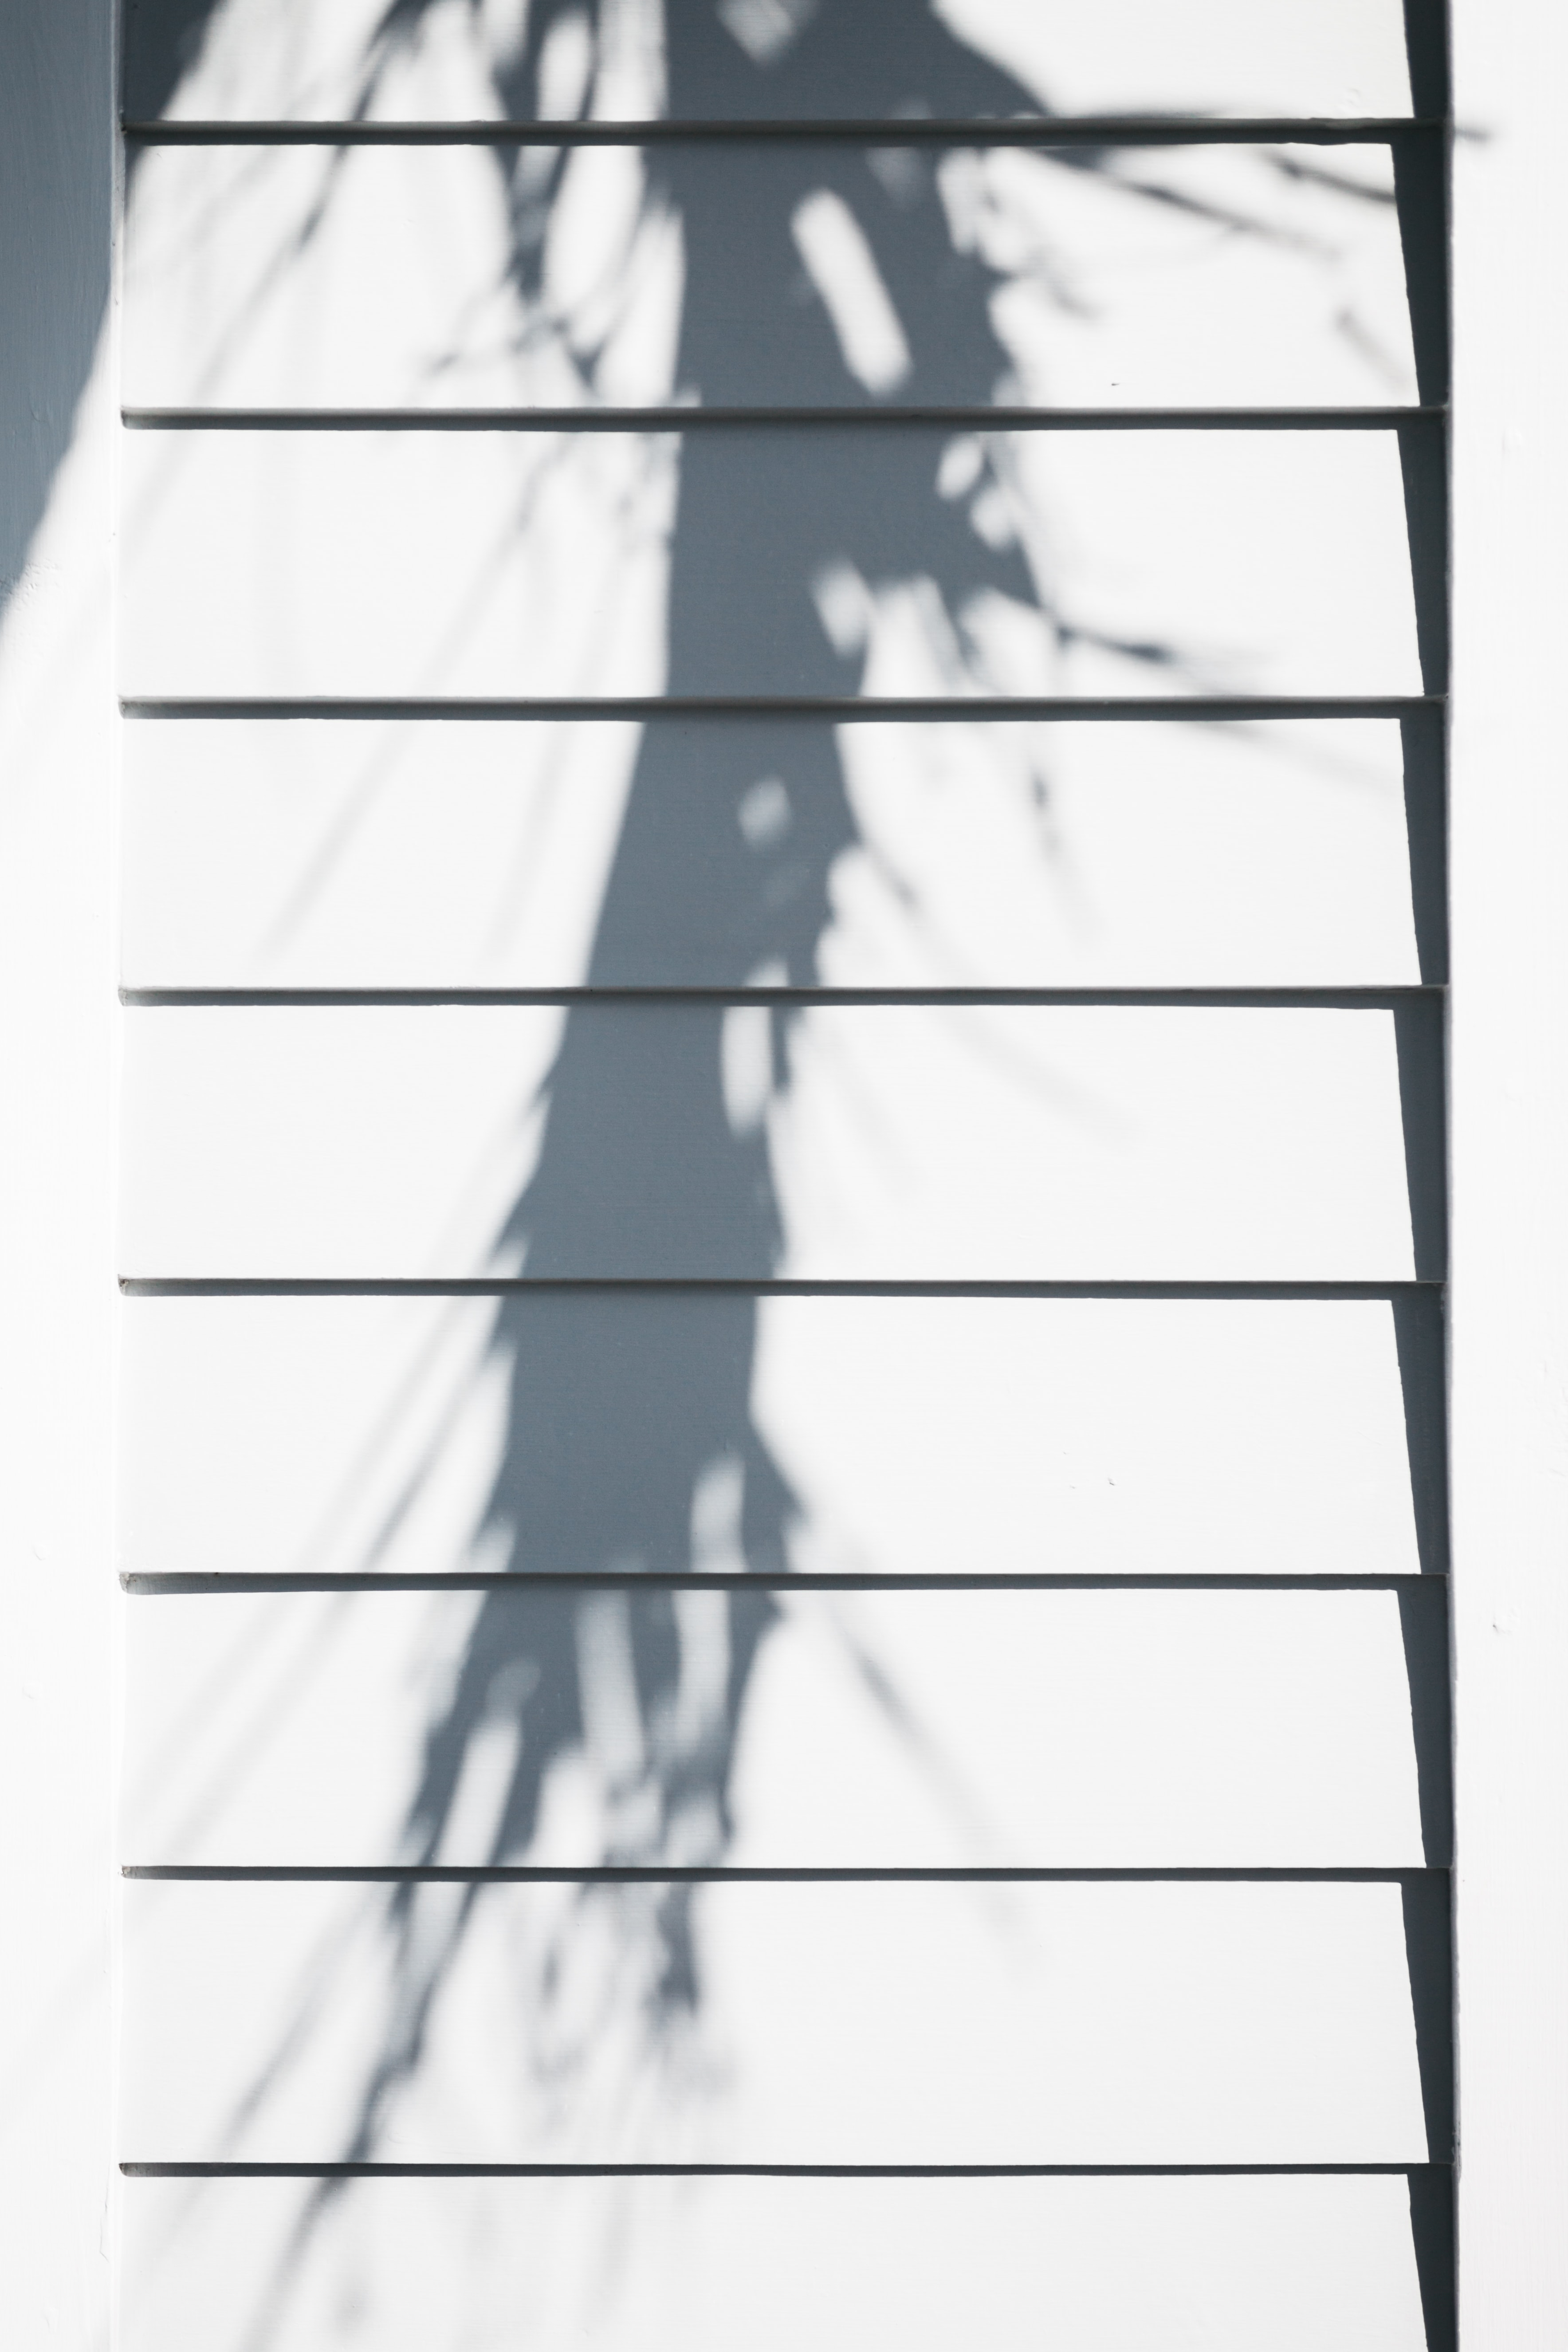 A long shadow on white wooden wall panels